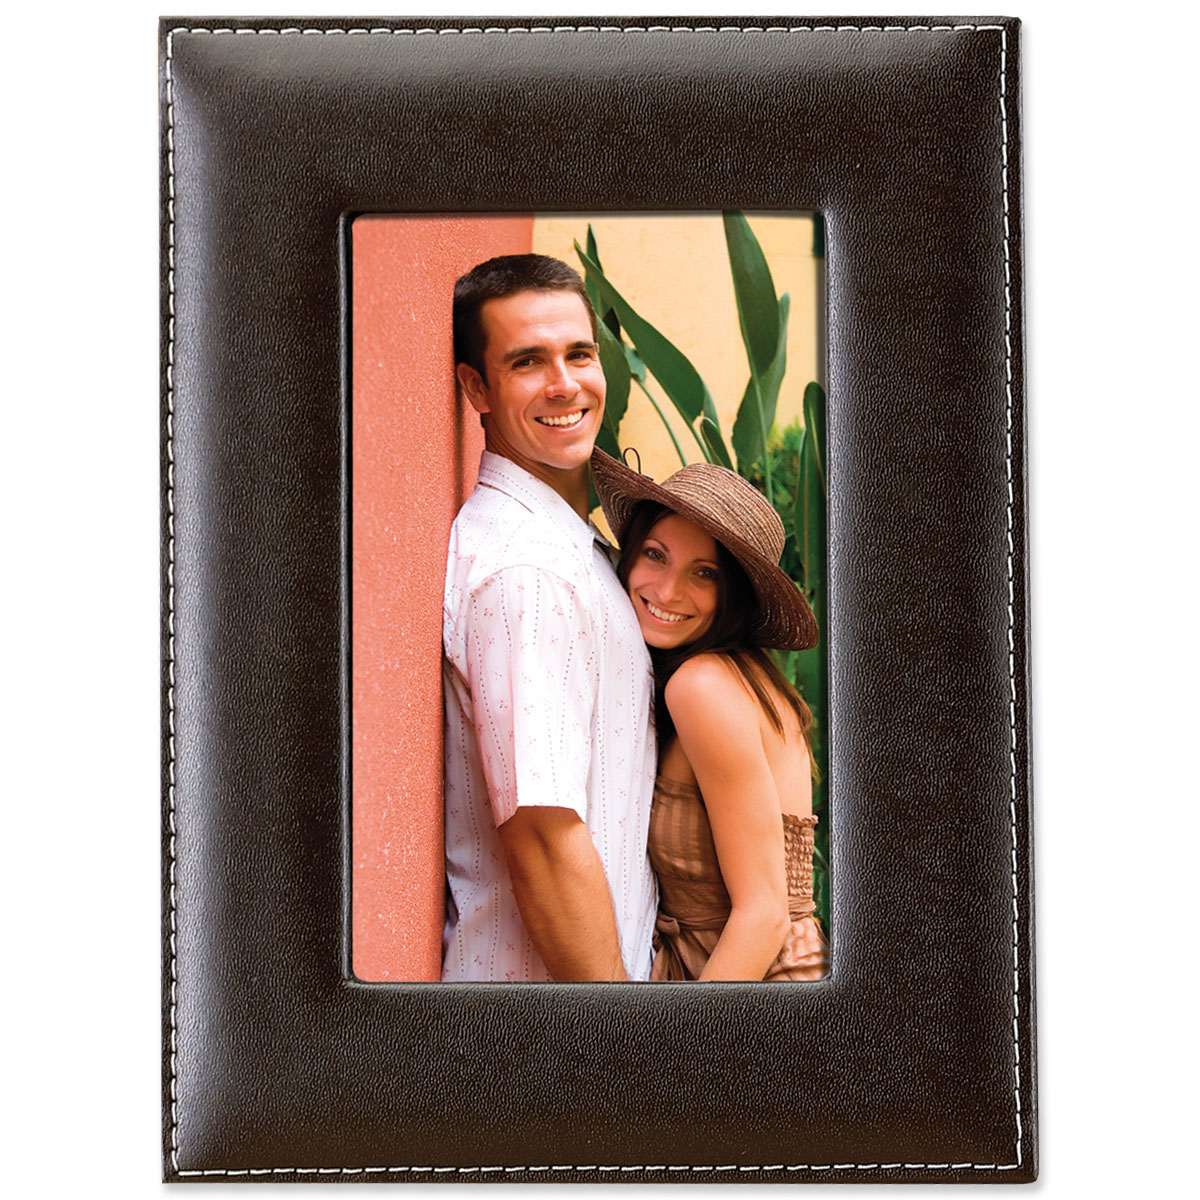 Dark Brown Leather 4x6 Picture Frame